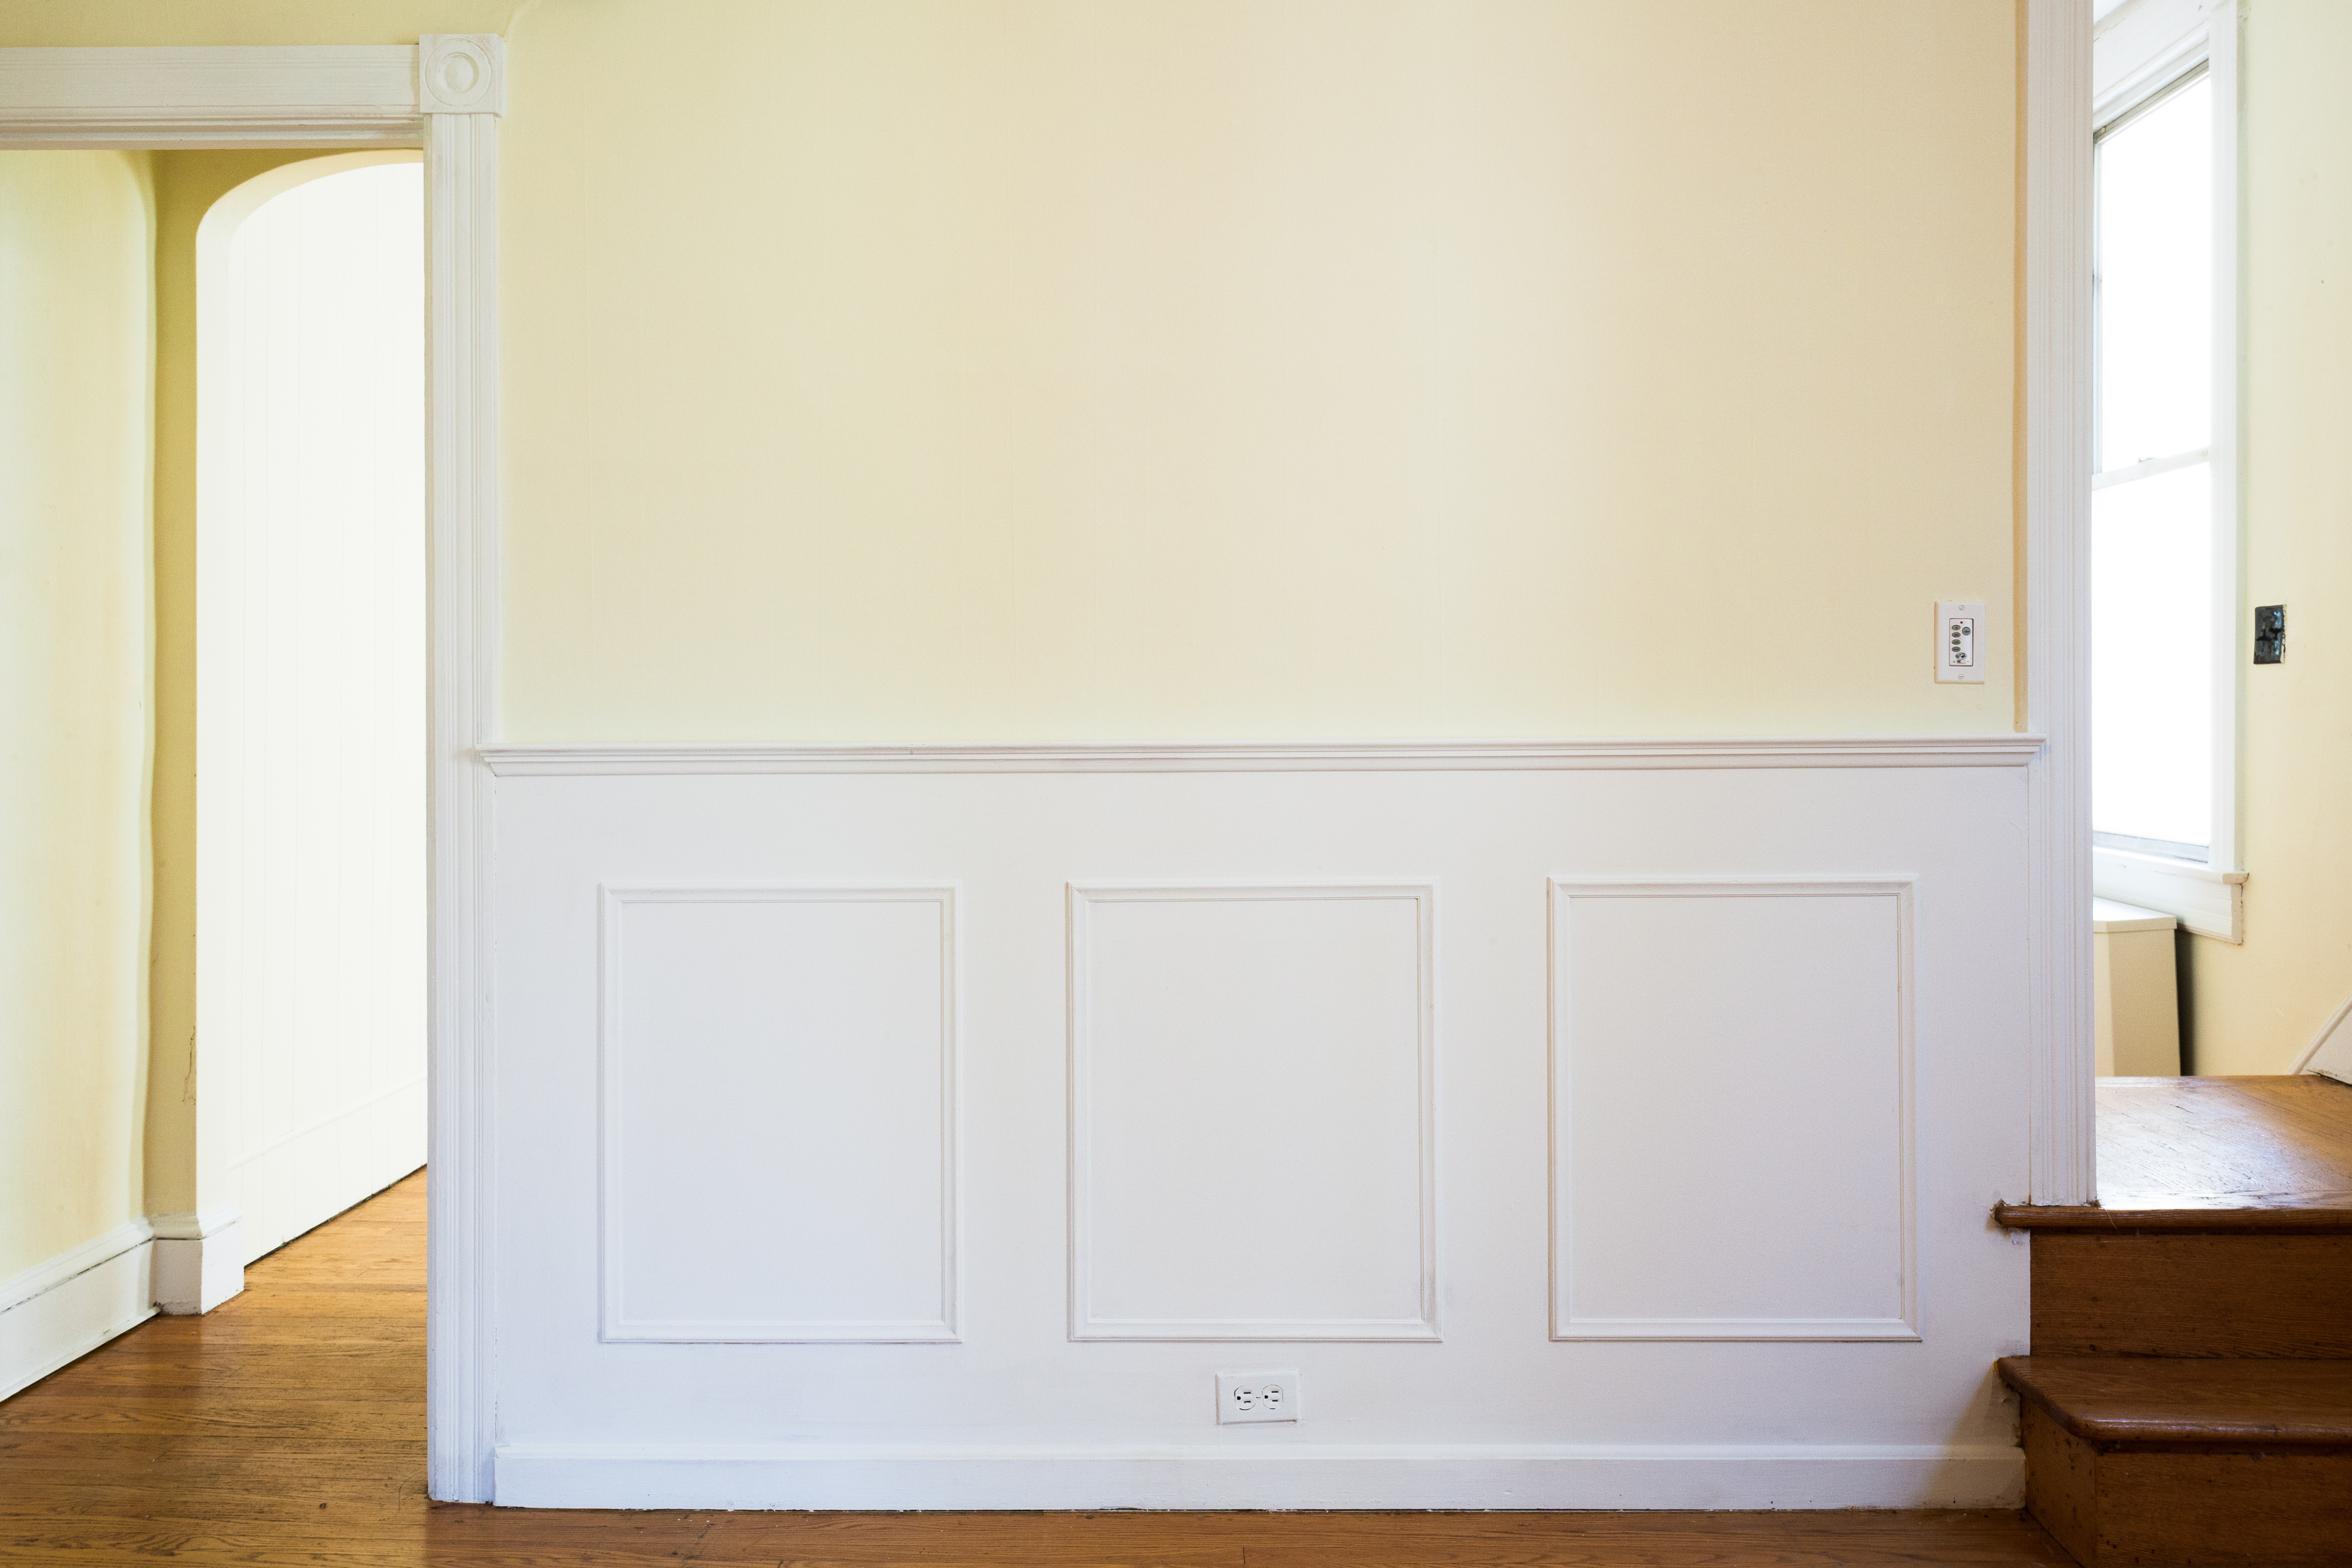 wainscoting | wainscoting ideas | home design | design | design elements | woodwork | woodwork projects | wow factor